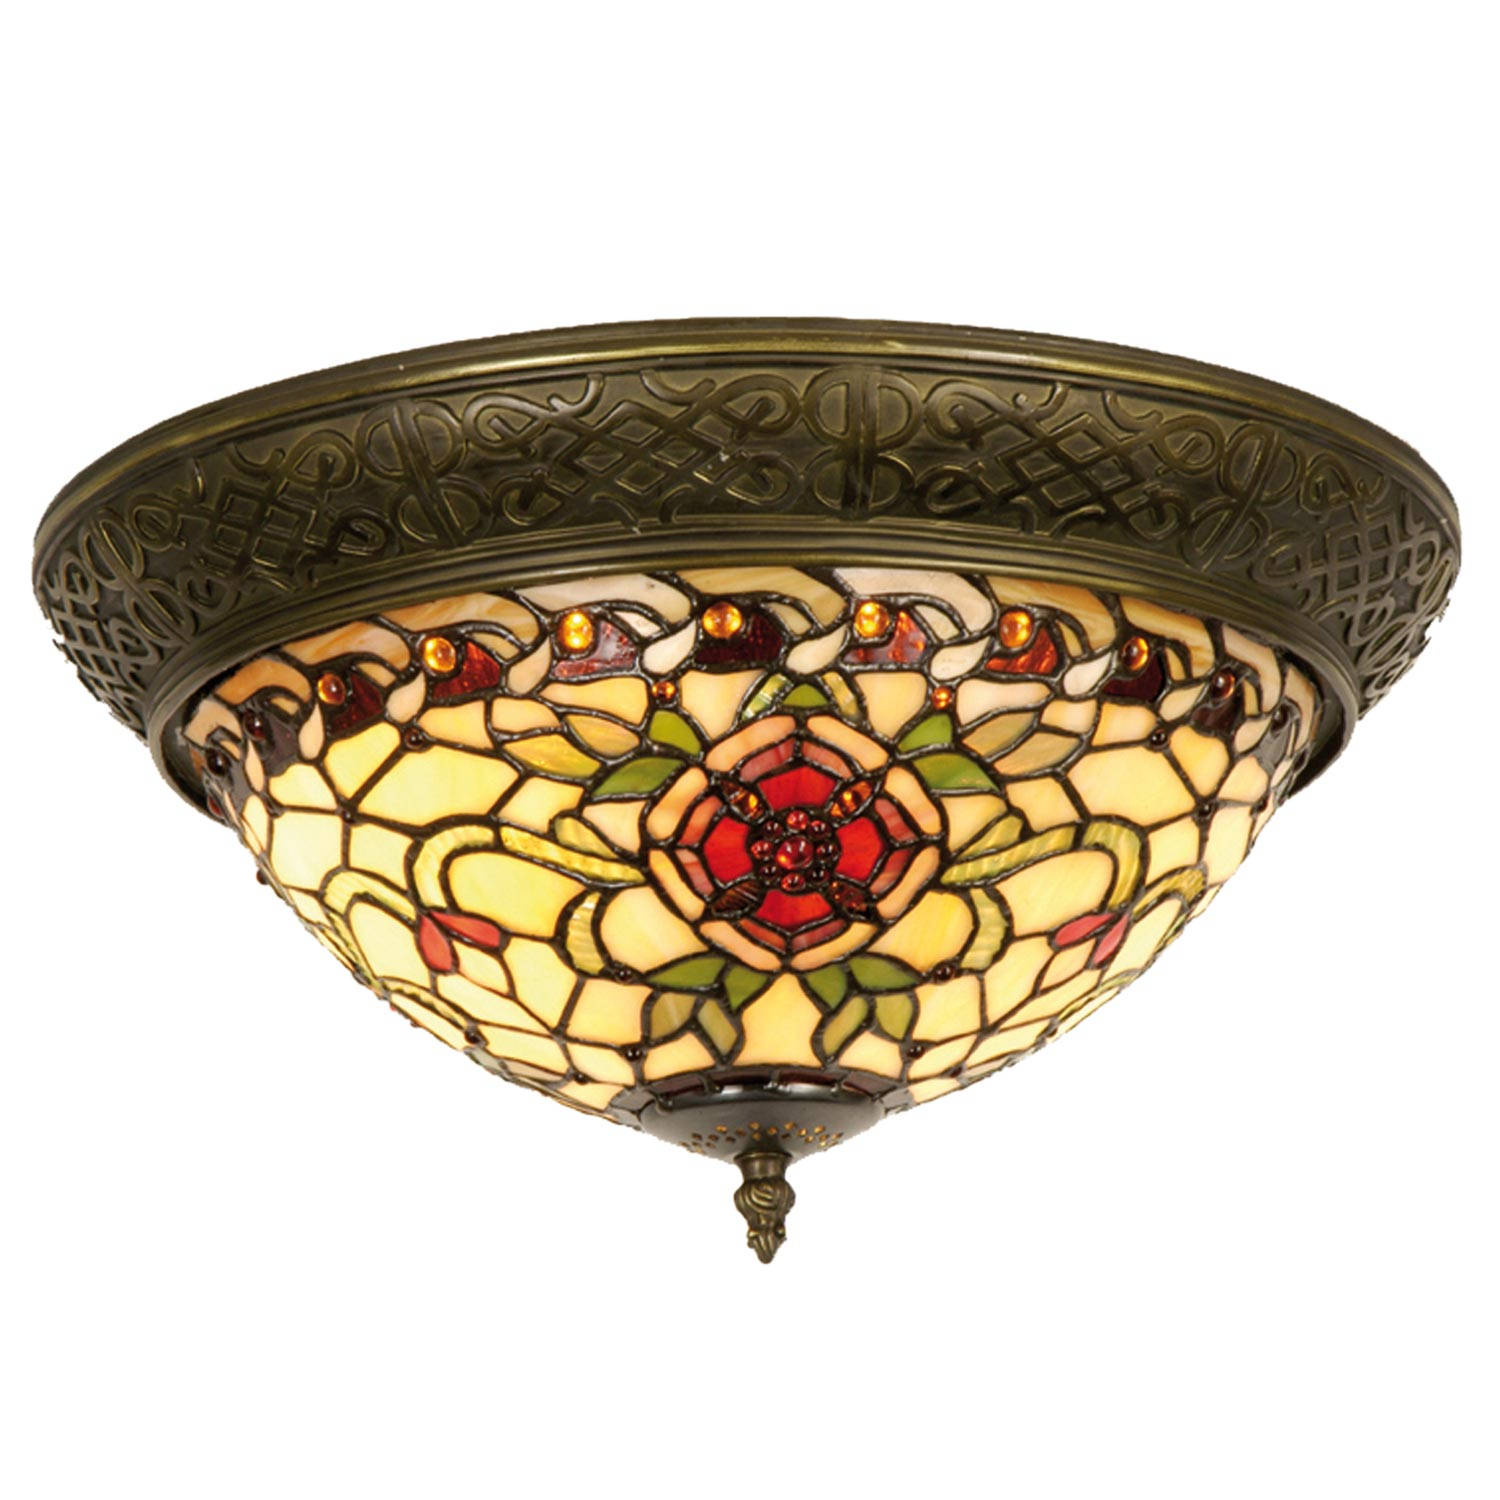 Clayre & eef tiffany plafondlamp compleet red flower serie - bruin, rood, brons, wit - ijzer, glas